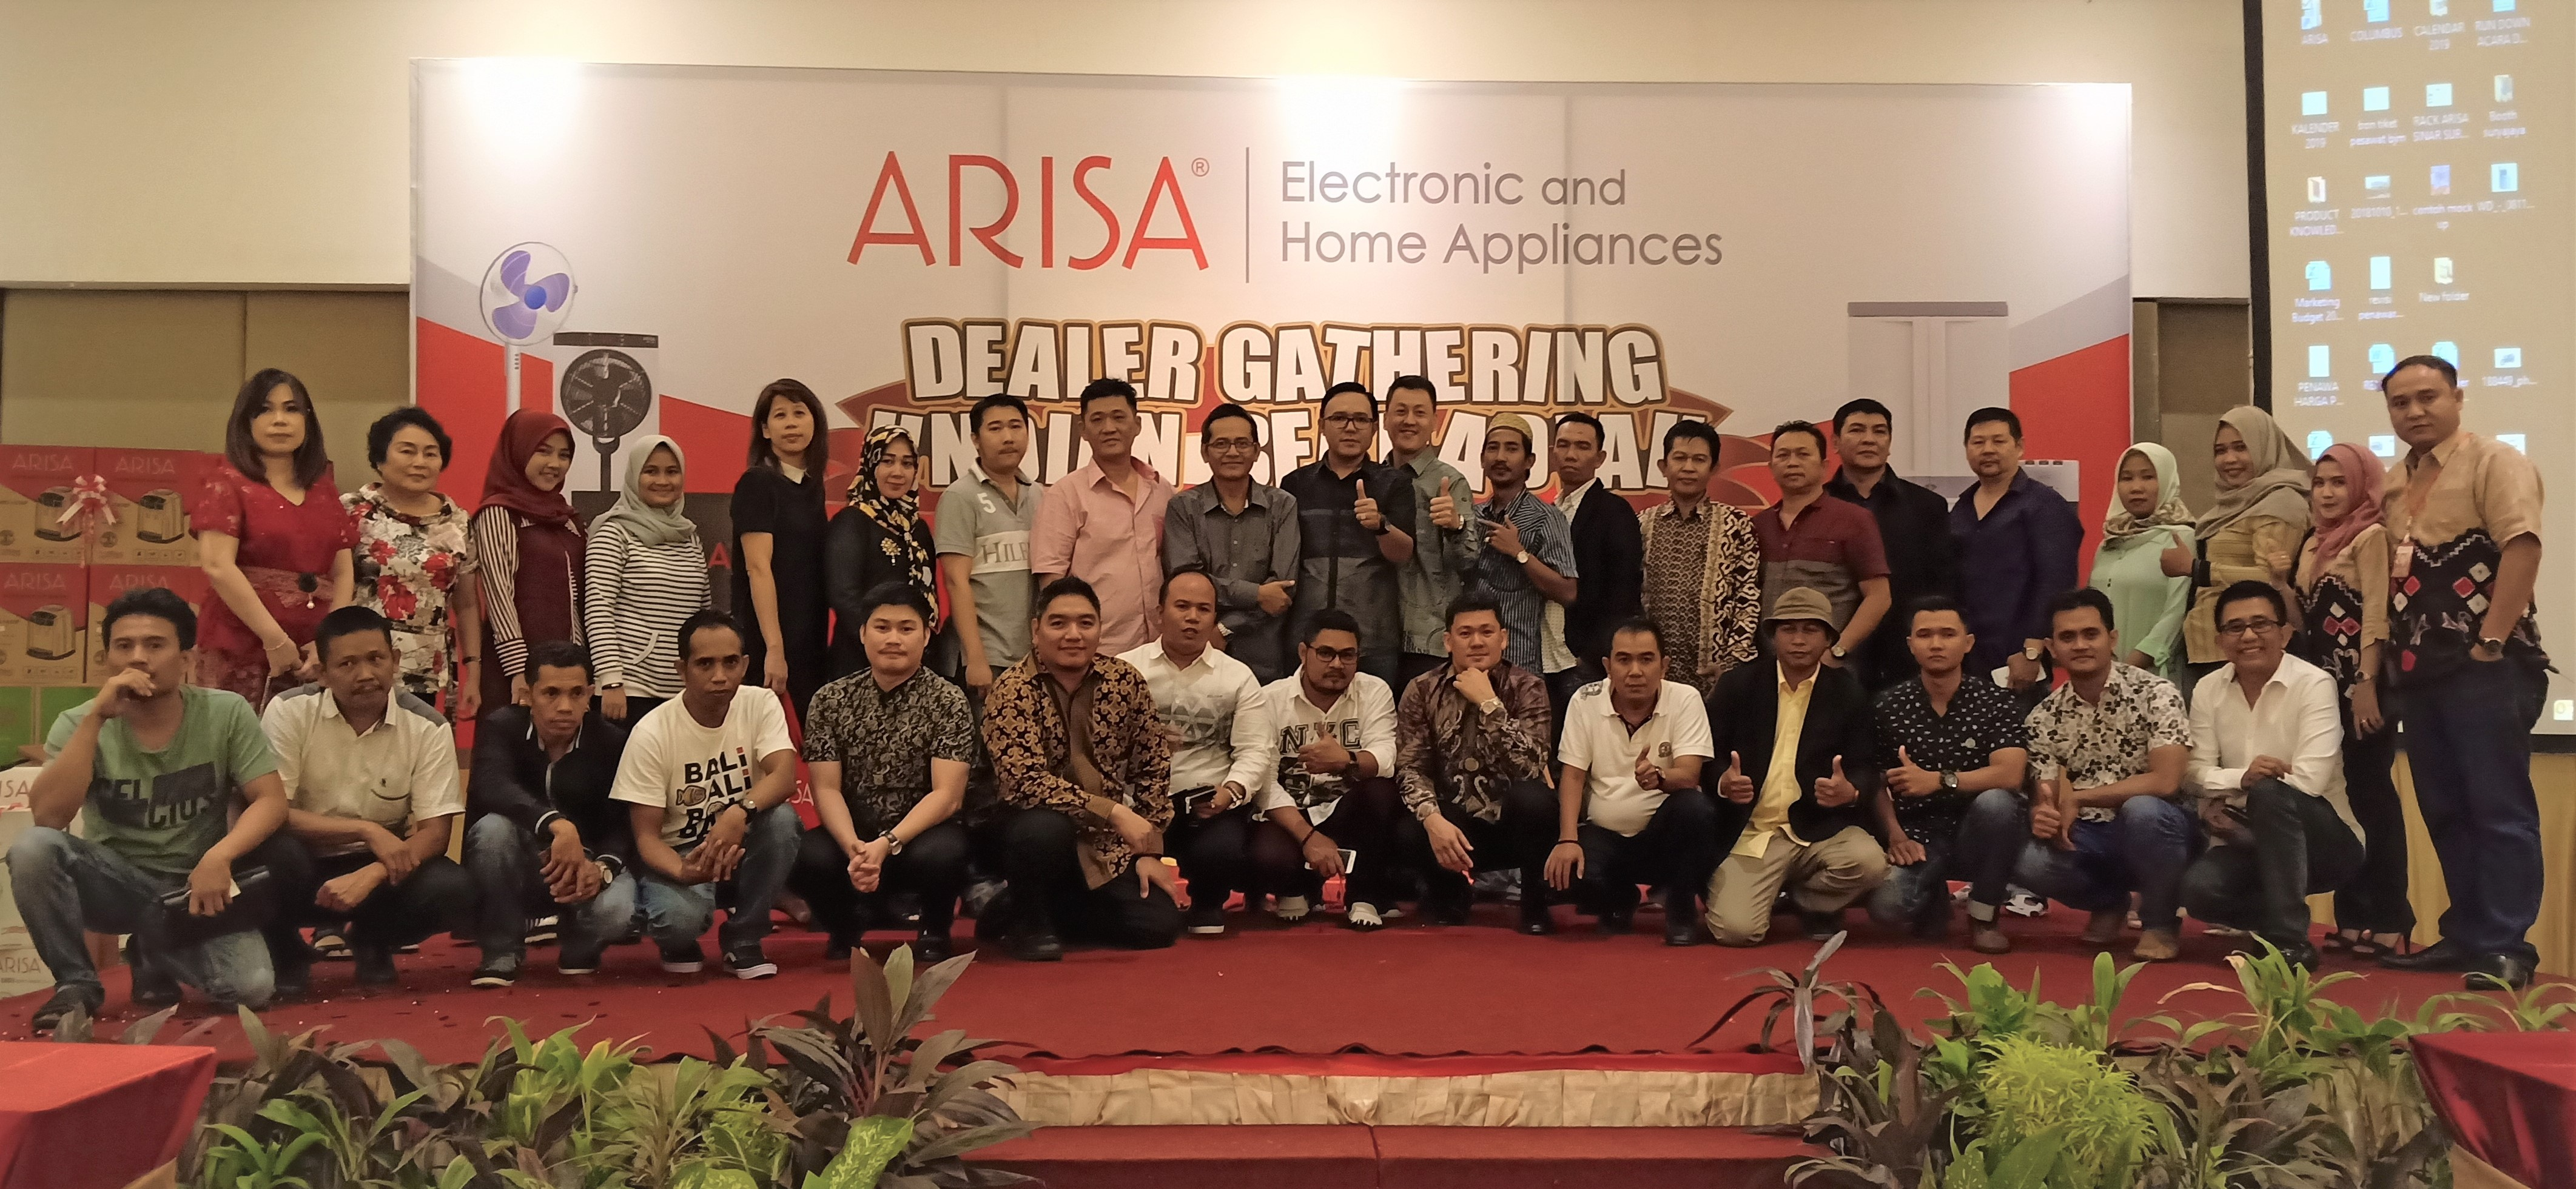 ARISA - DEALER GATHERING 2018